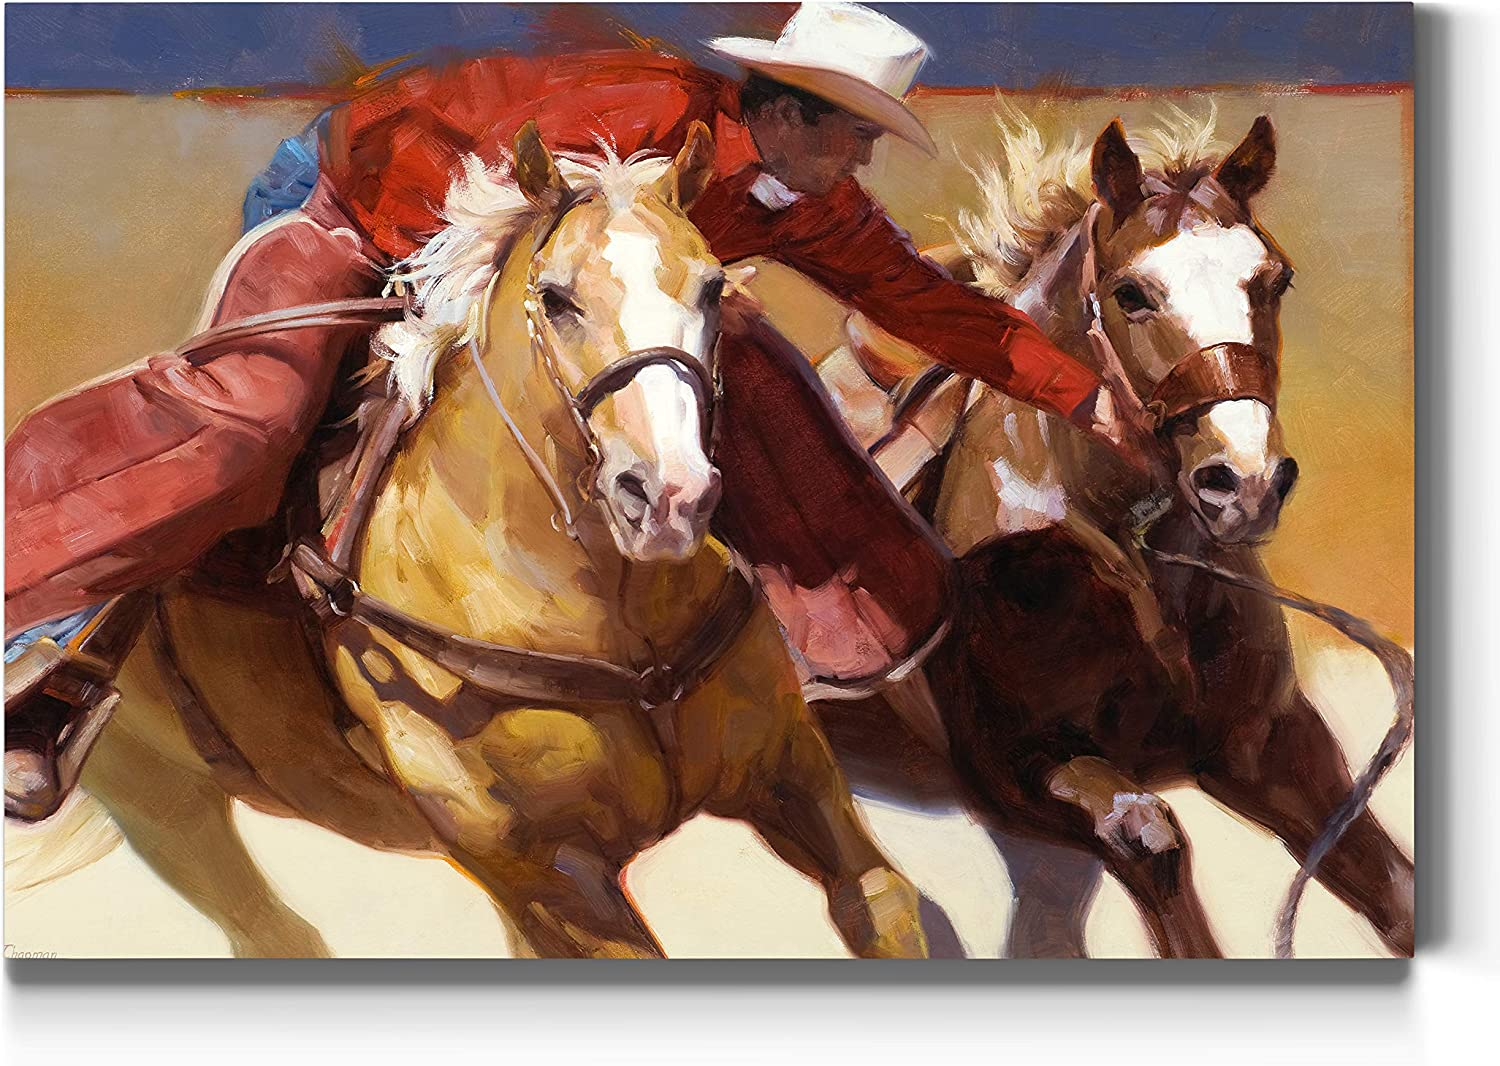 Renditions Gallery Nabbed Wall Art, Rodeo Artwork, Western Americana, Red Cowboy and two Horses, Broncos, Premium Gallery Wrapped Canvas Decor, Ready to Hang, 18 In H x 27 In W, Made in America Print